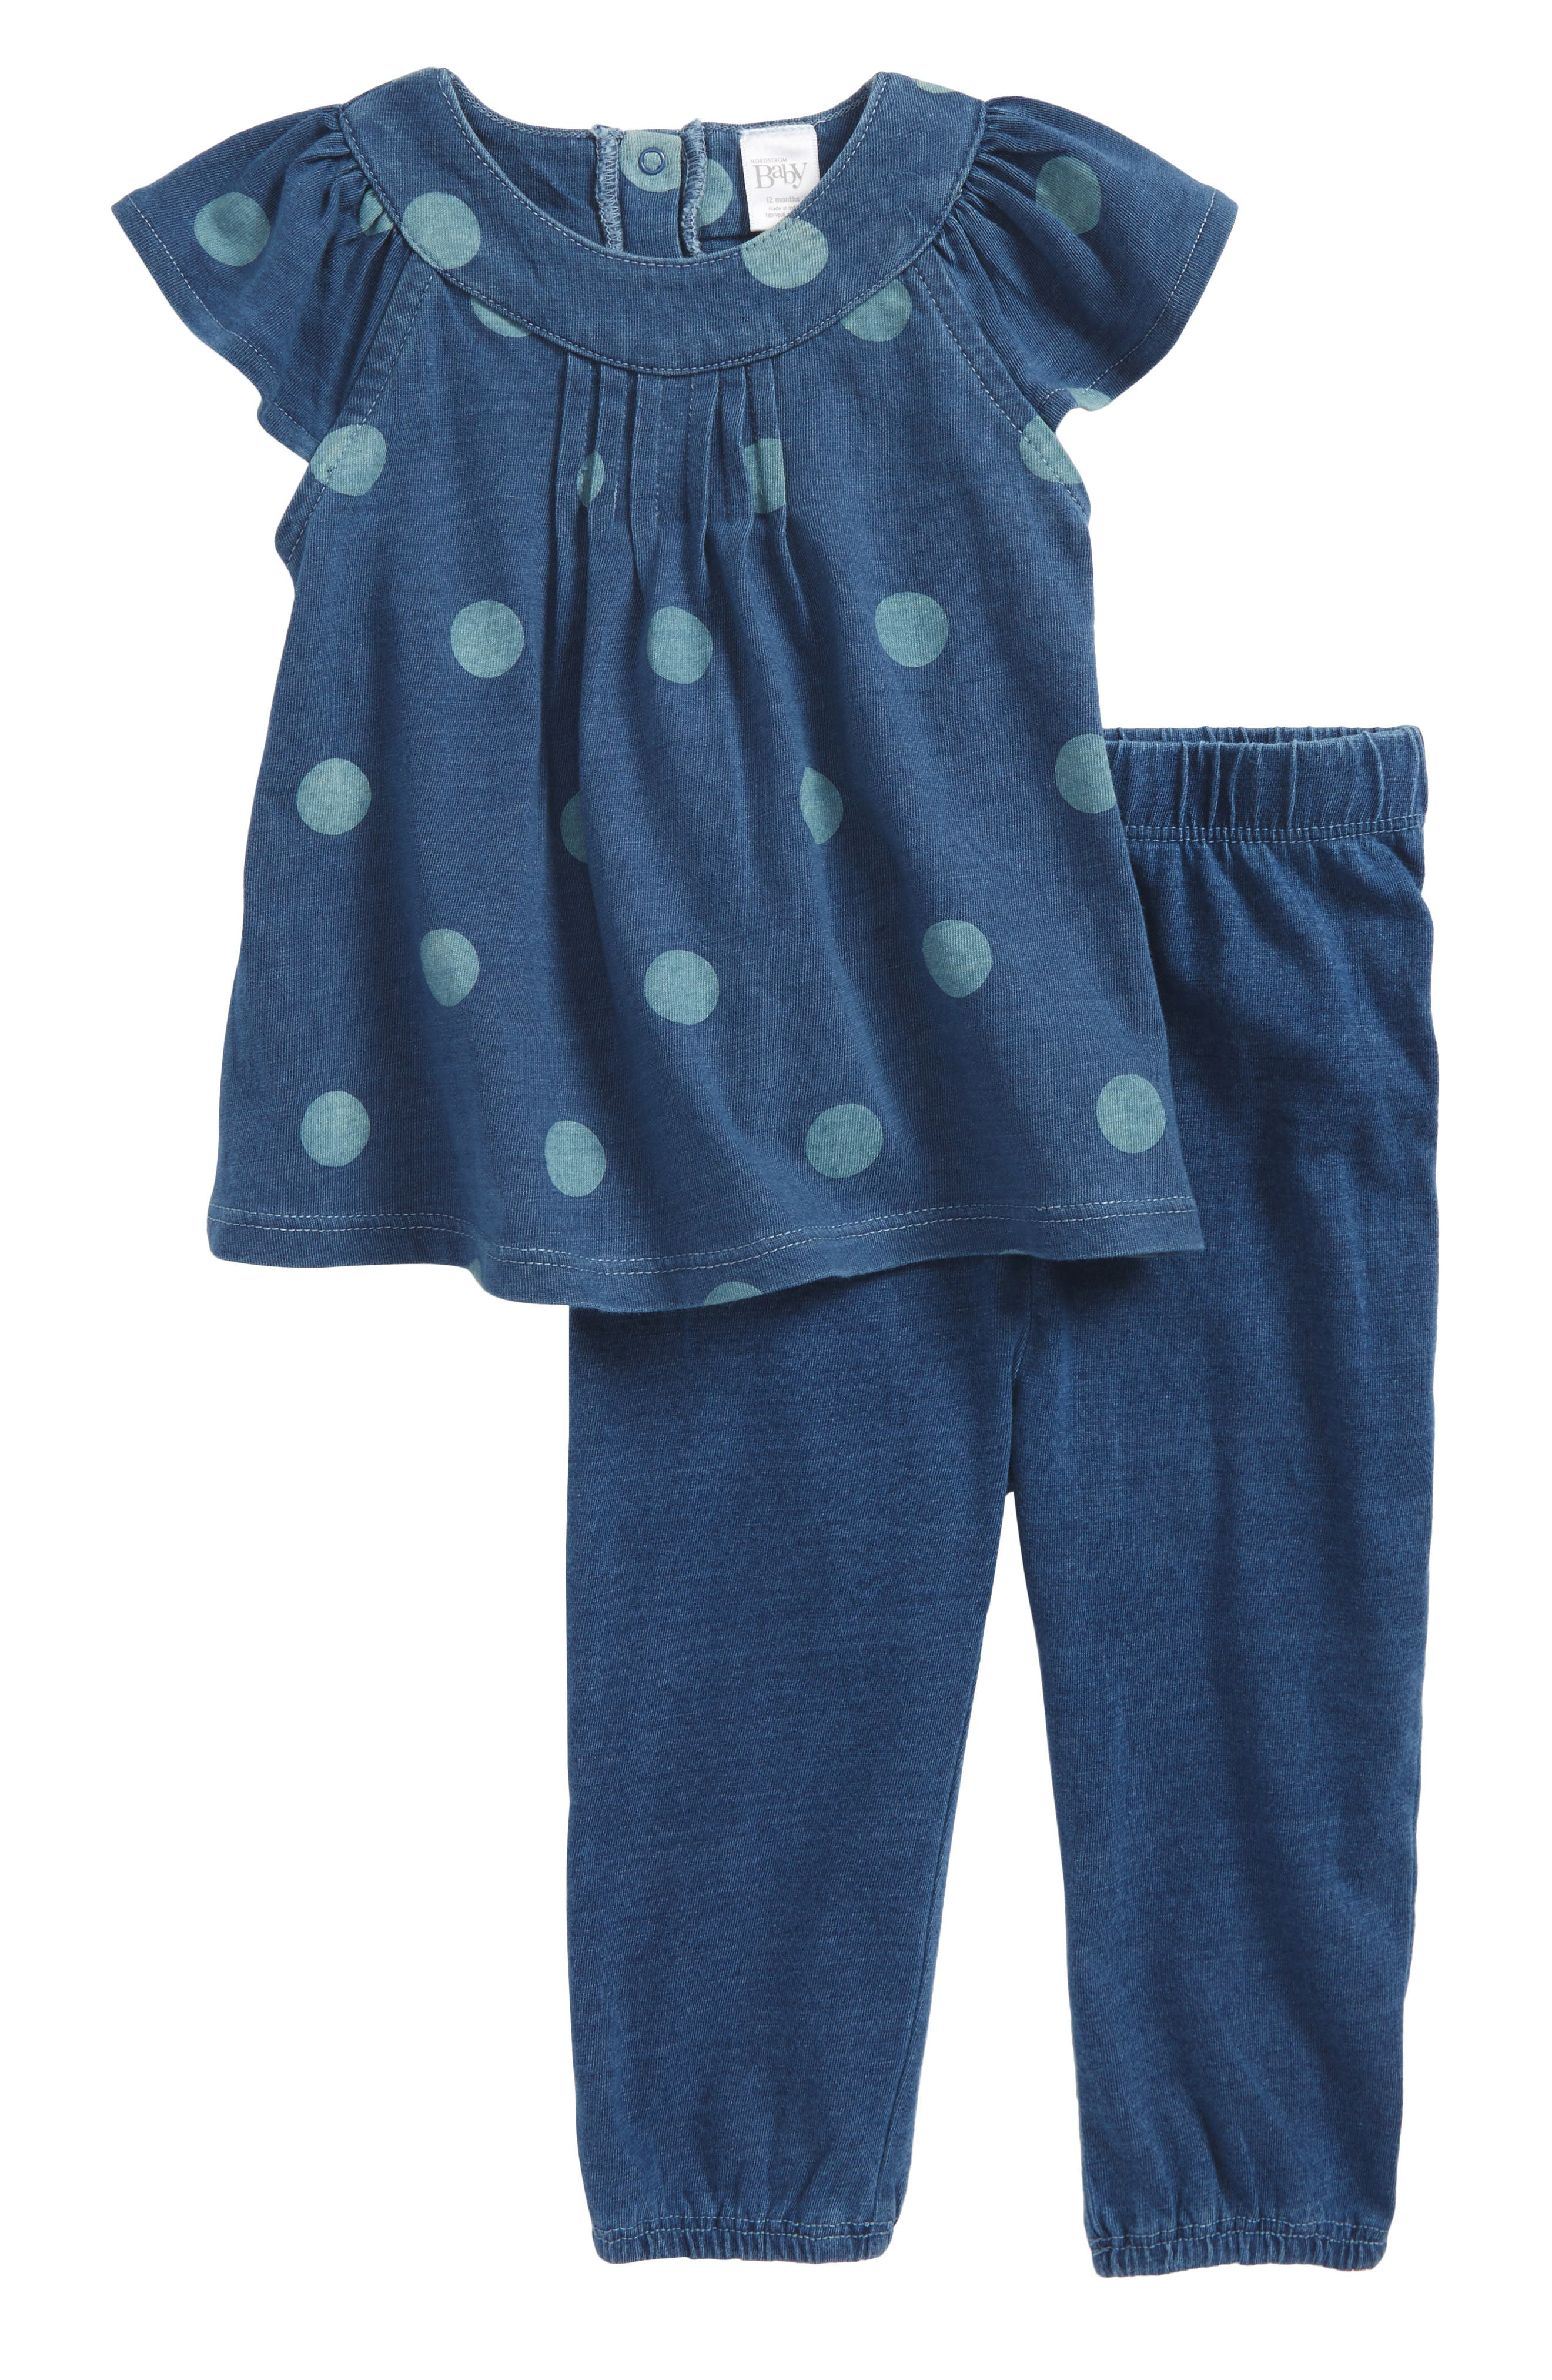 Nordstrom Baby Tunic & Leggings Set (Baby Girls)